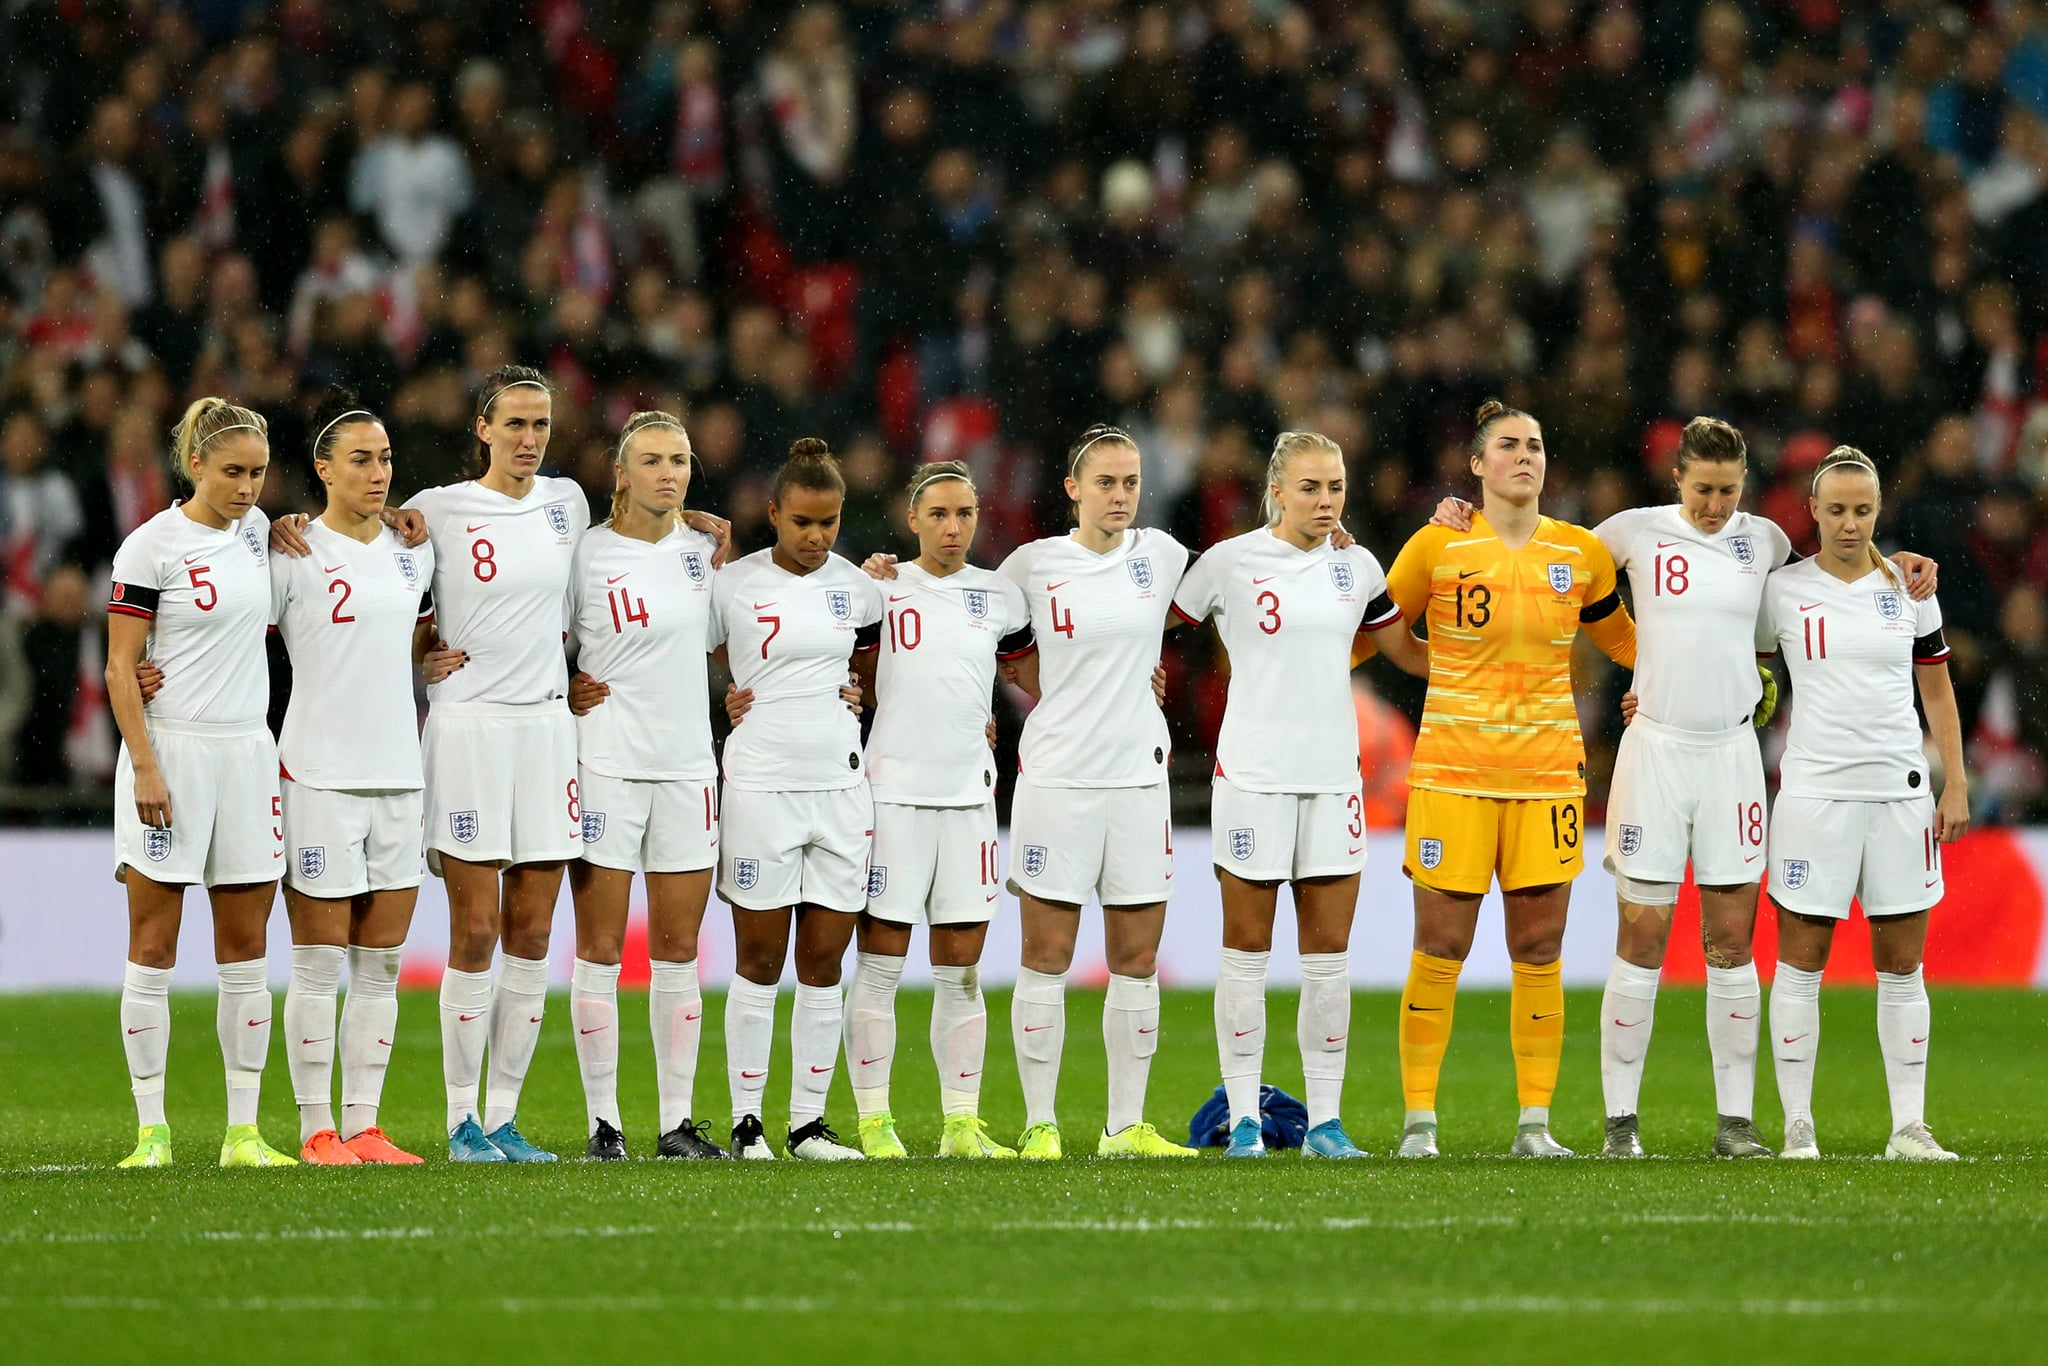 LONDON, ENGLAND - NOVEMBER 09:  The England team line up before the International Friendly between England Women and Germany Women at Wembley Stadium on November 09, 2019 in London, England. (Photo by Paul Harding/Getty Images)